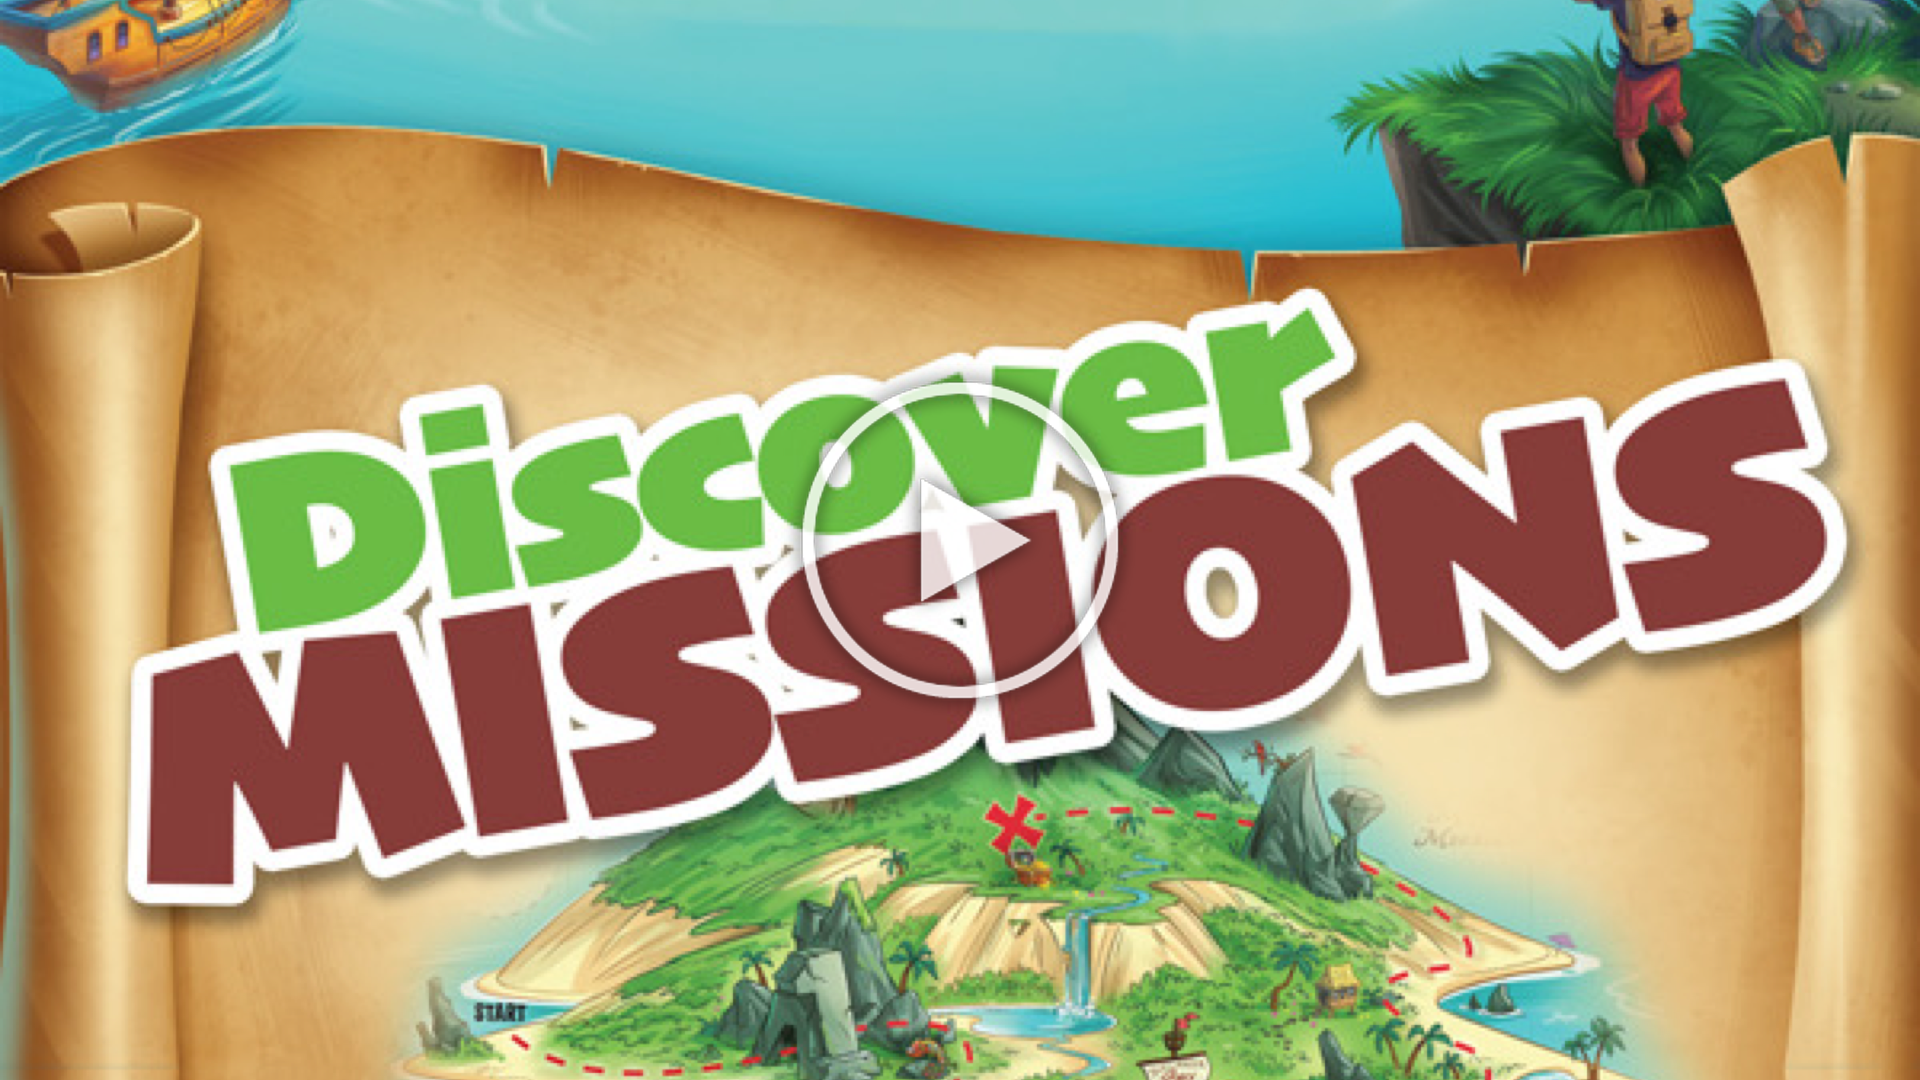 Missions play video